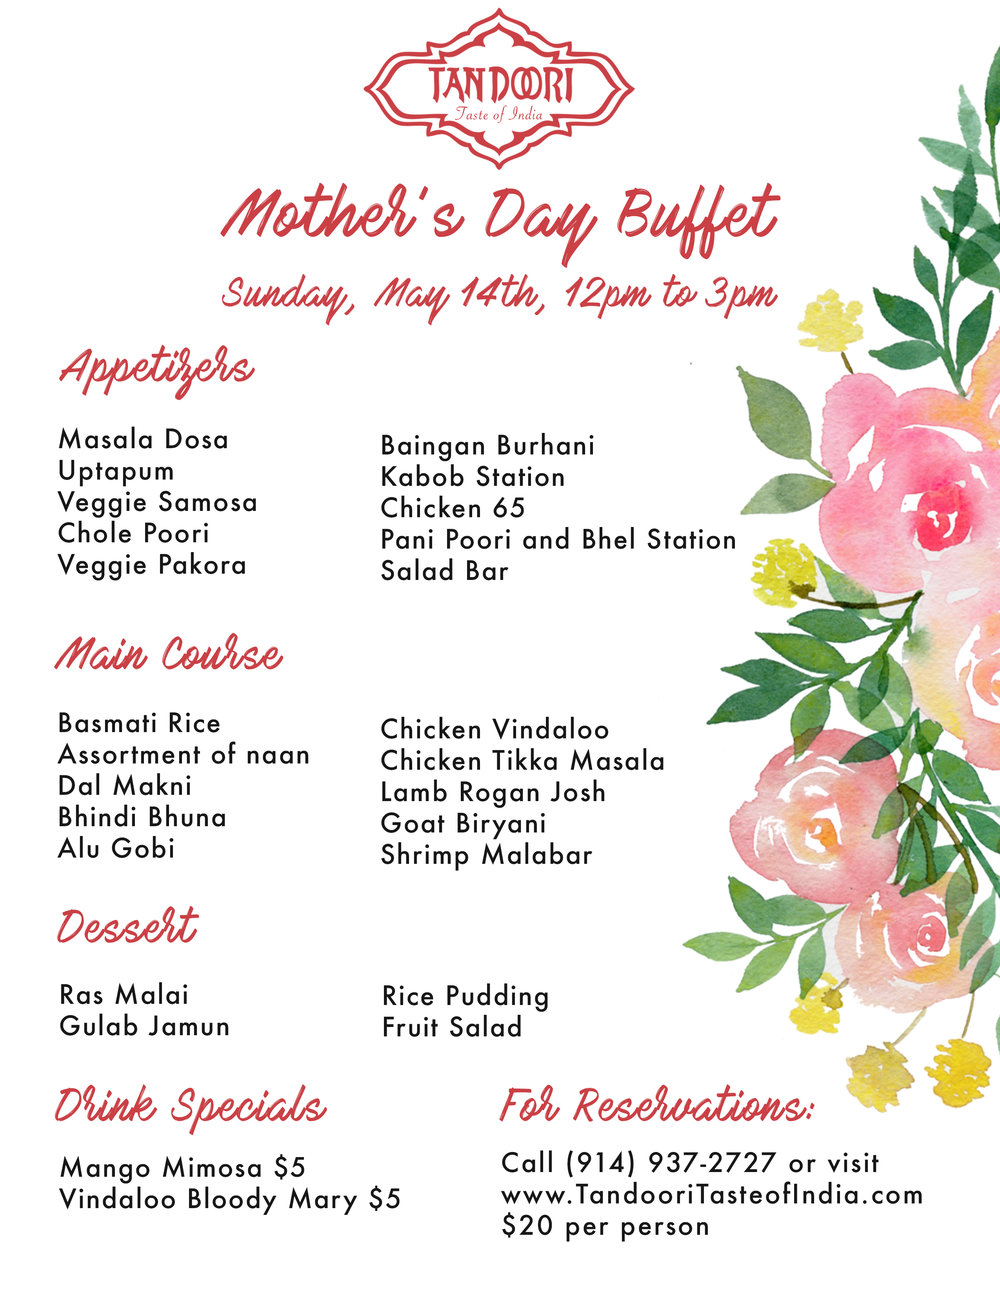 mothers-day-tandoori-2017.jpg